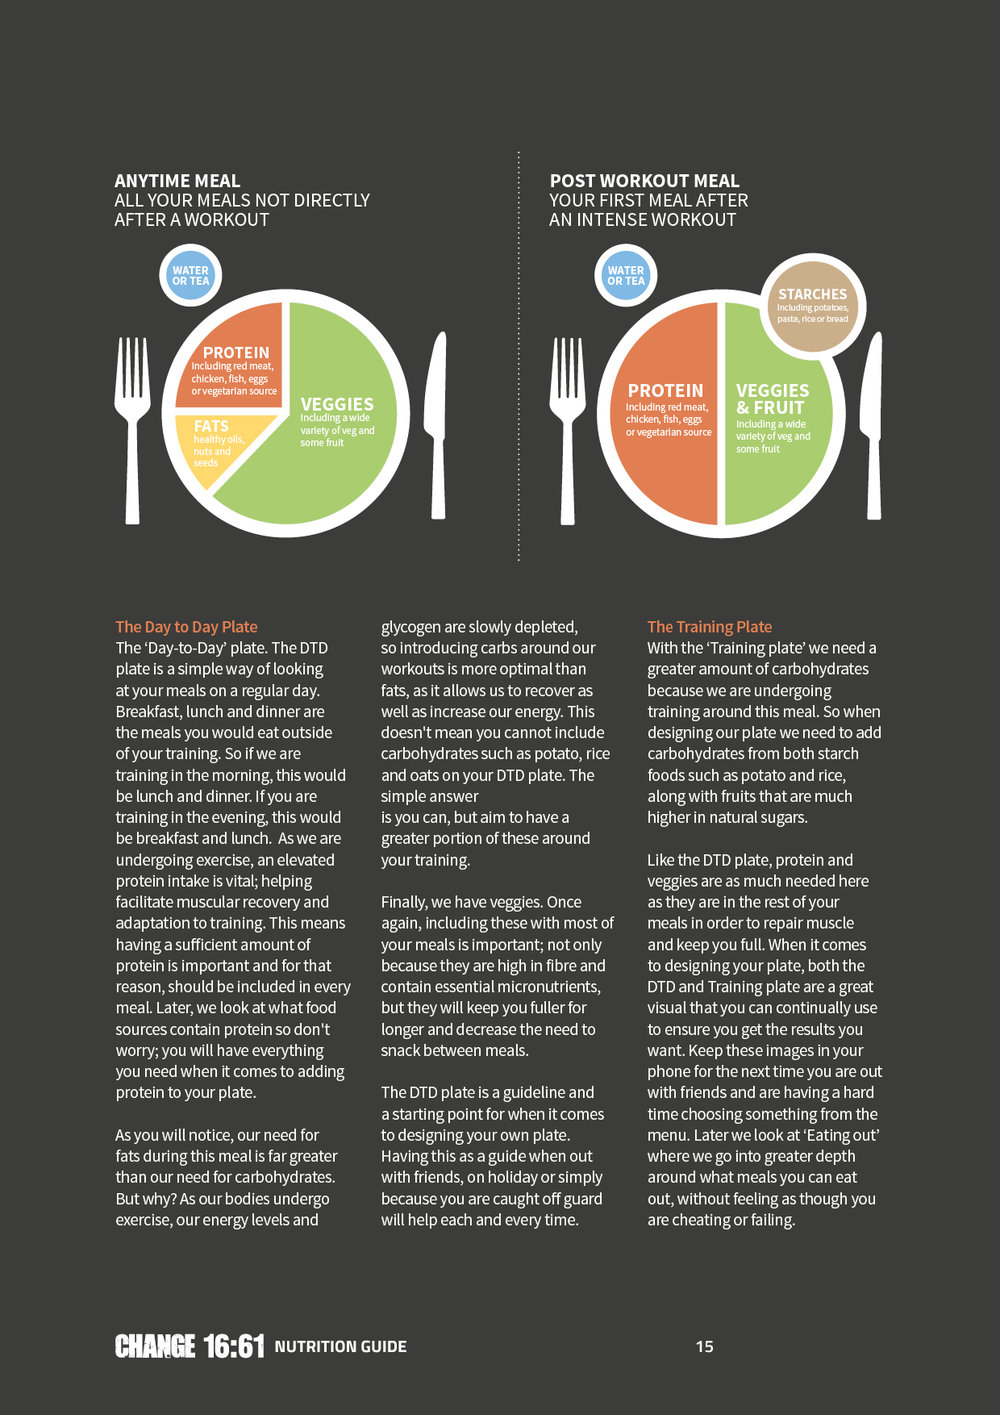 Change 16-61 Nutrition Guide4.jpg